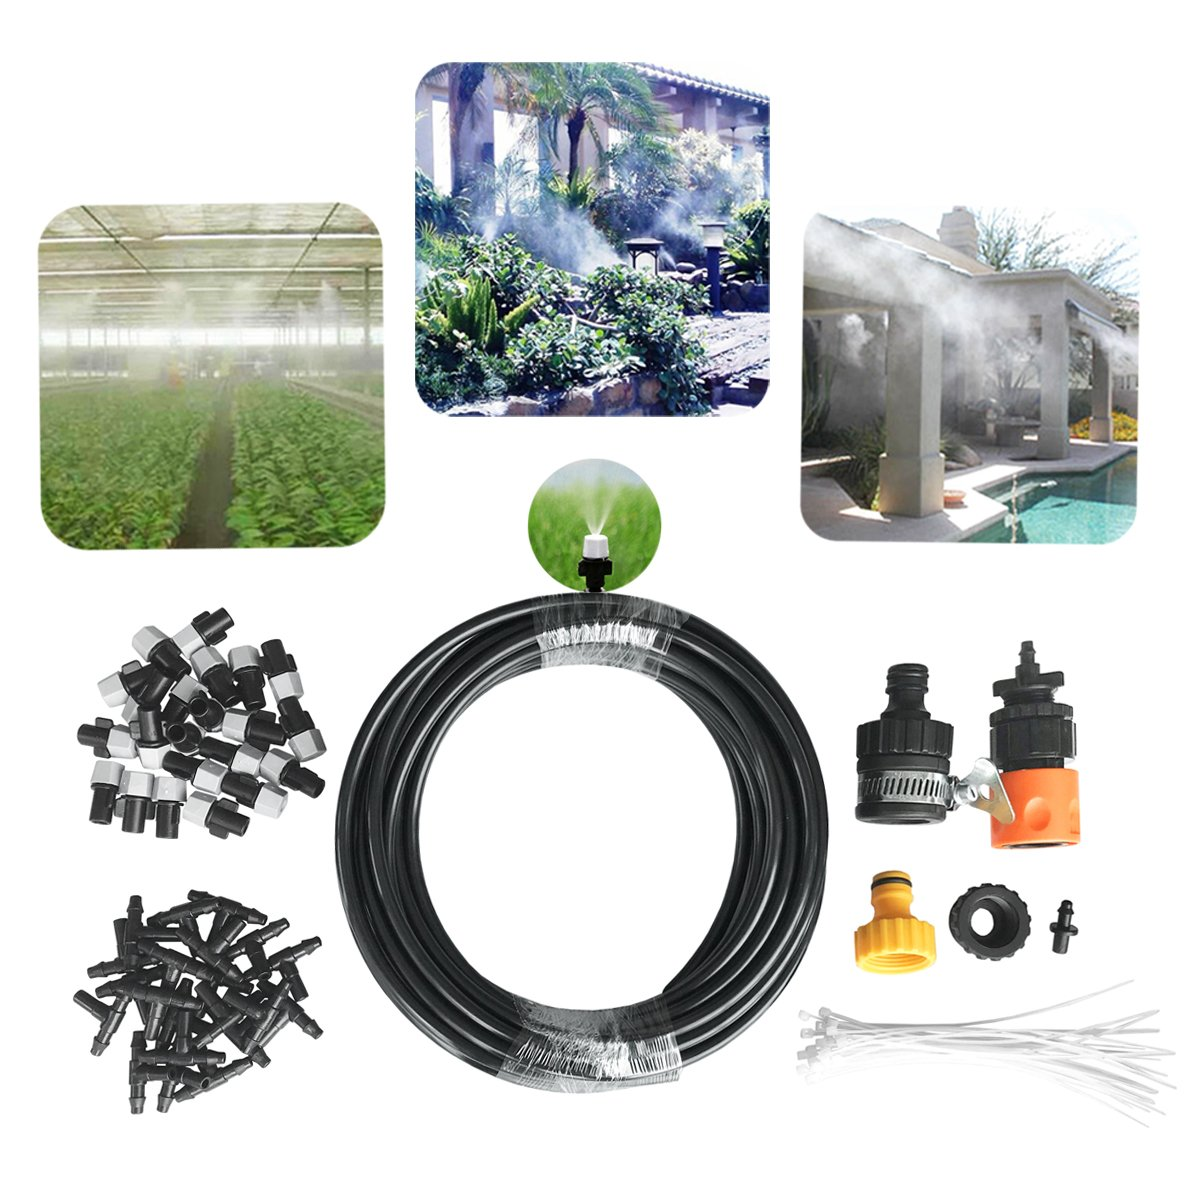 "DIY Misting System 50ft Misters Cooling Outdoor System Irrigation Sprinkle with 20pcs Misting Nozzles+3/4"" and 1/2"" Faucet Connector Each+1pc Universal ..."